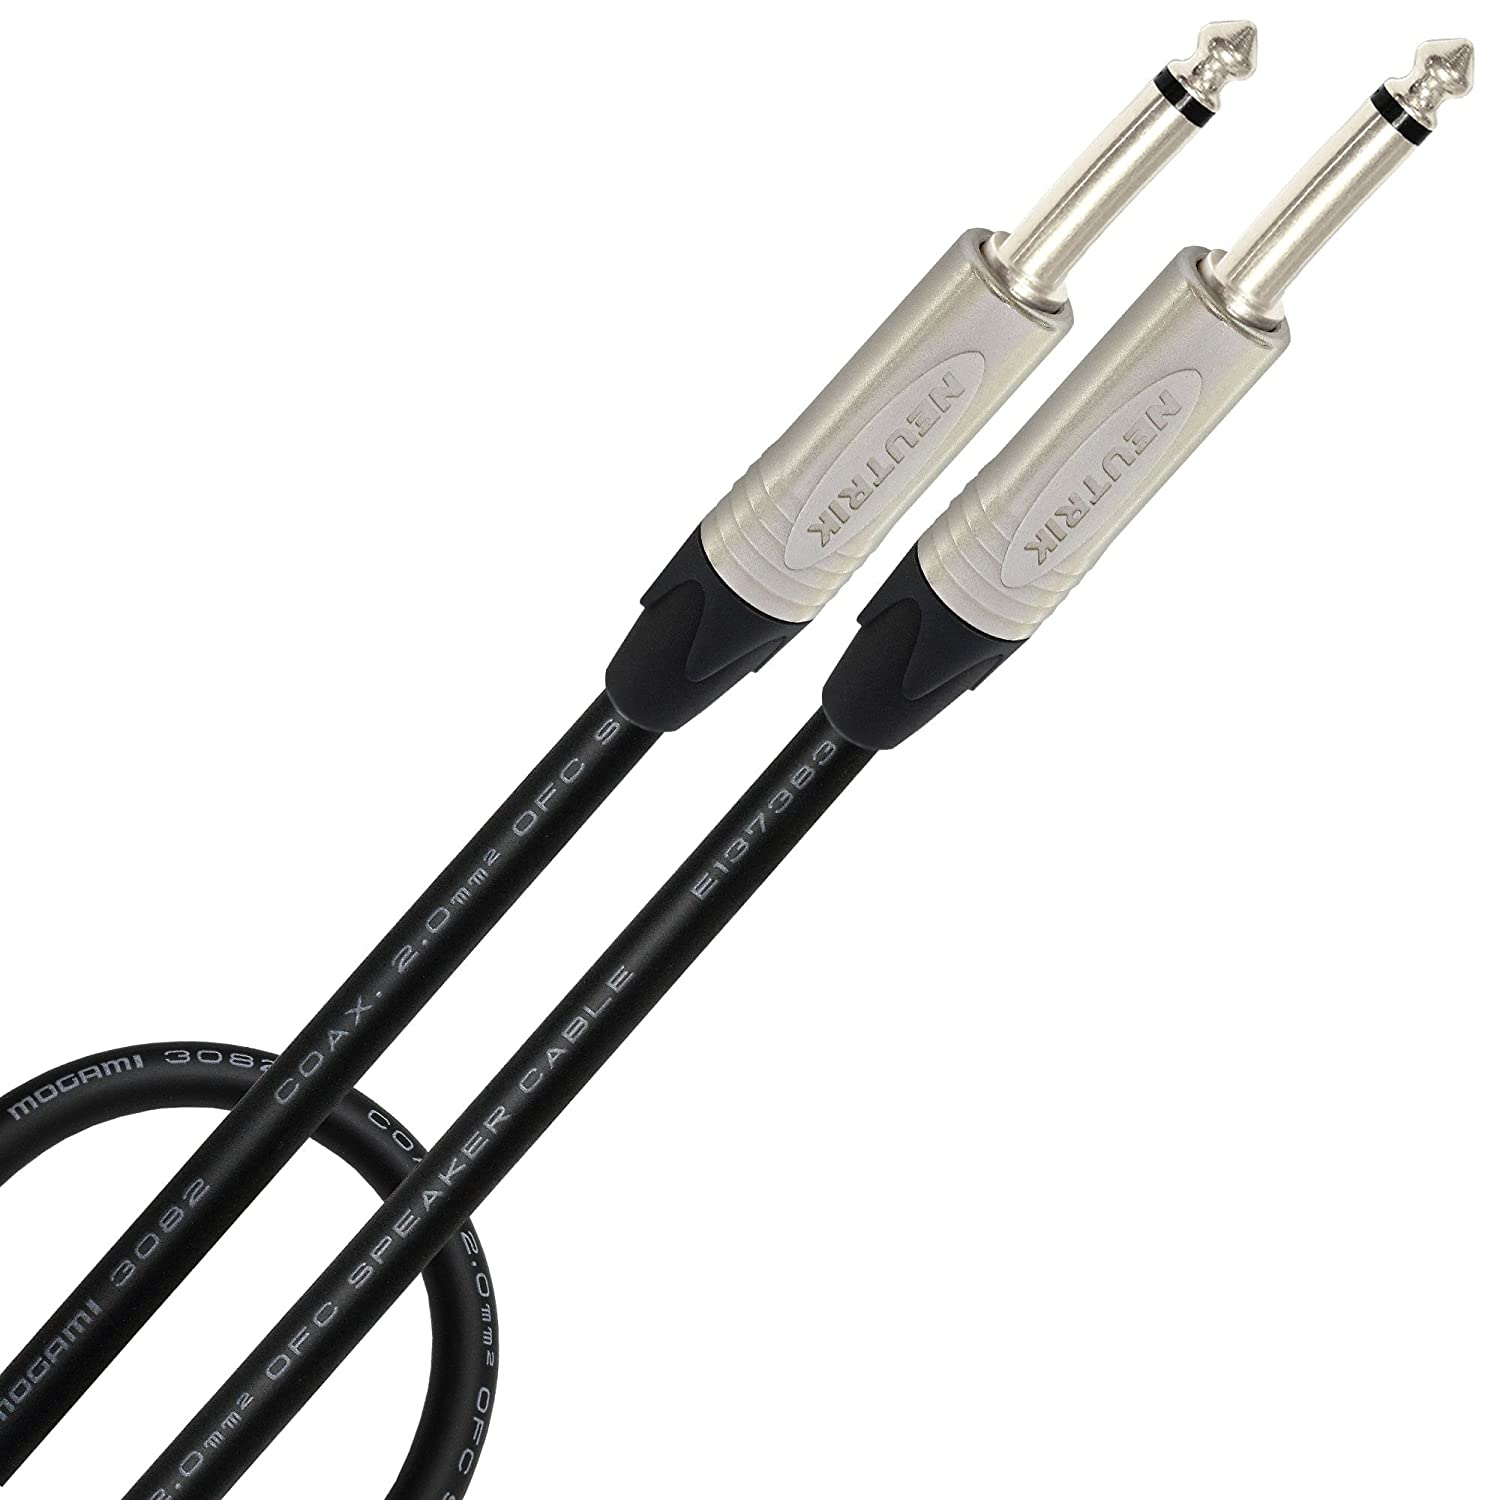 3 pies - Mogami 3082 SuperFlexible coaxial 15 AWG audiófilo Cables ...